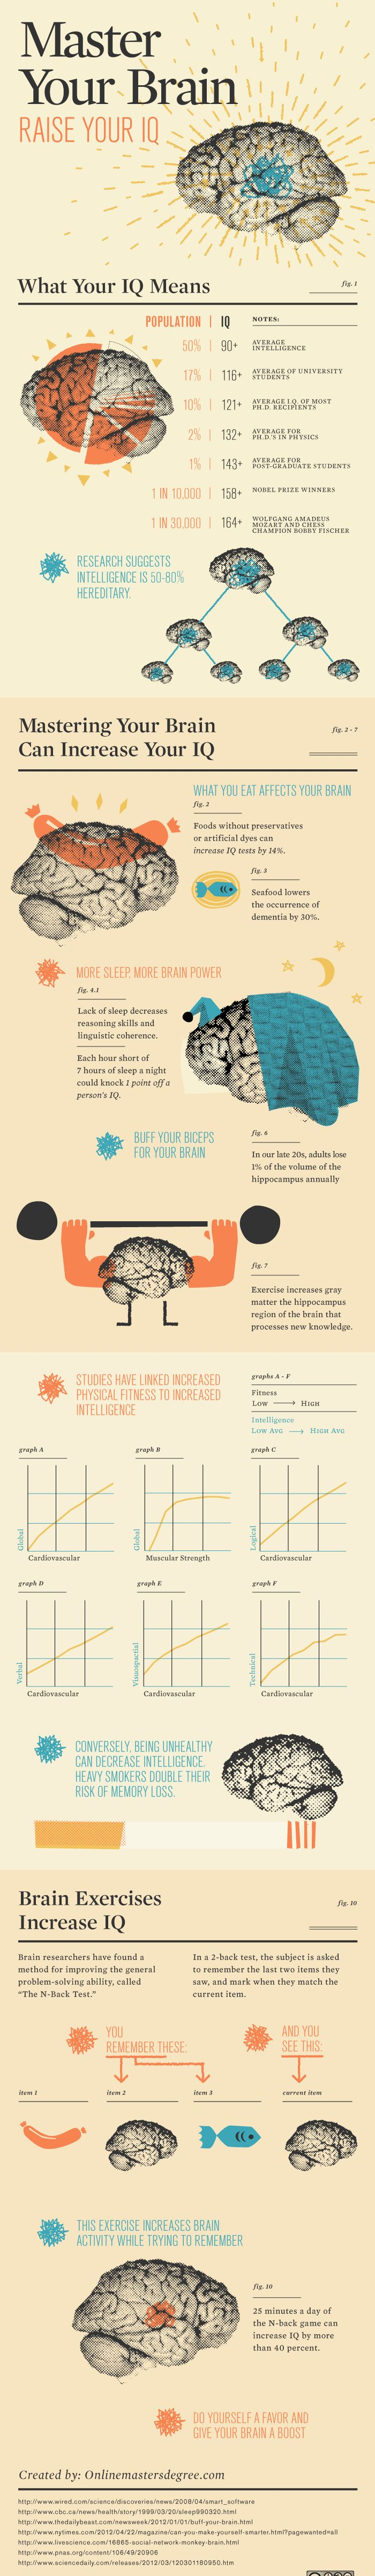 Master your Brain Power